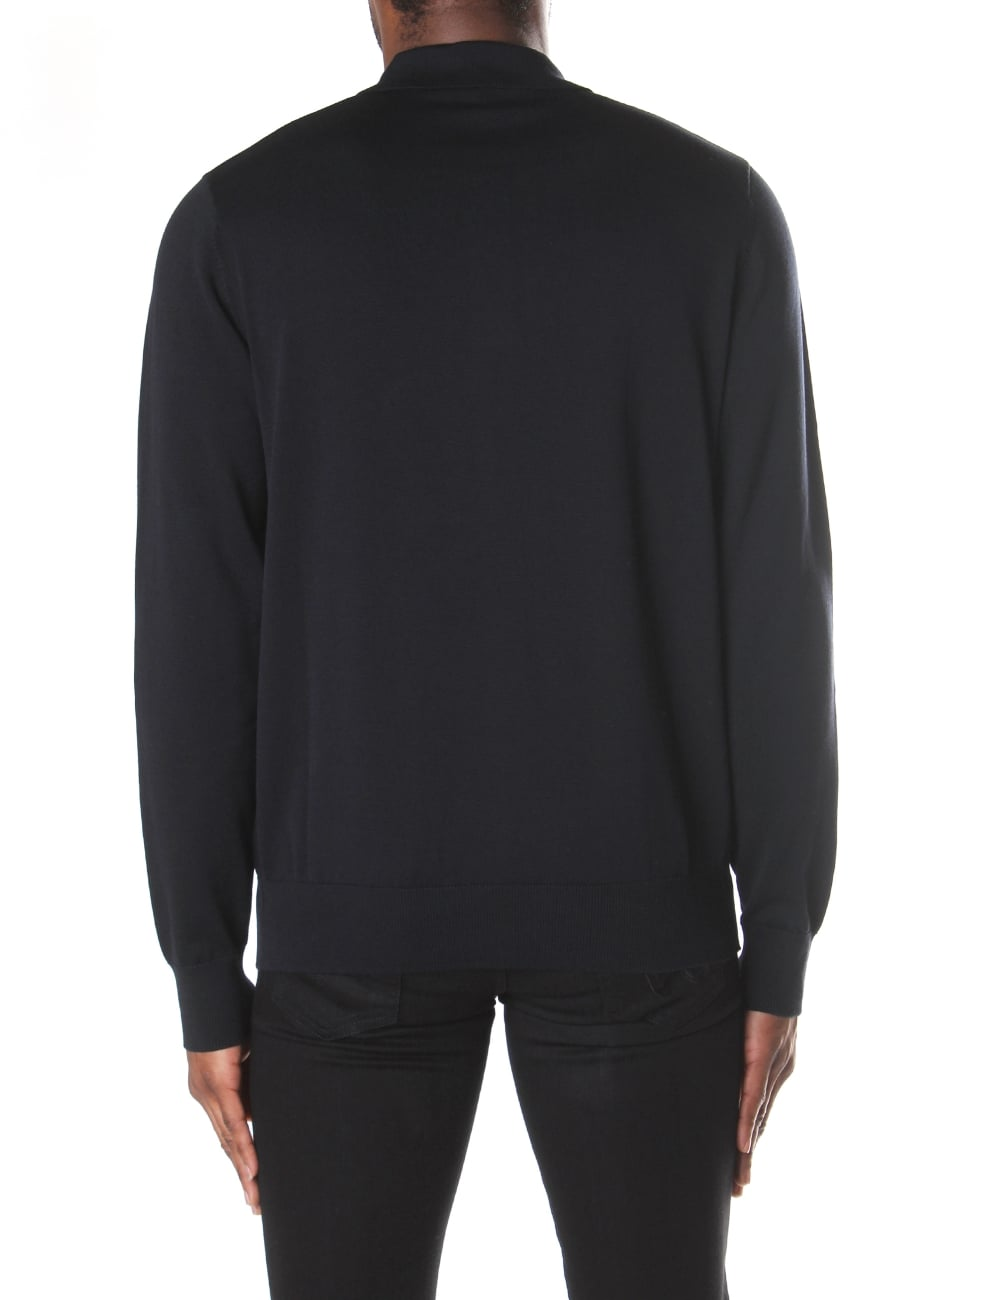 17140e35aaed Armani Jeans Men's Long Sleeve Knitted Polo Top